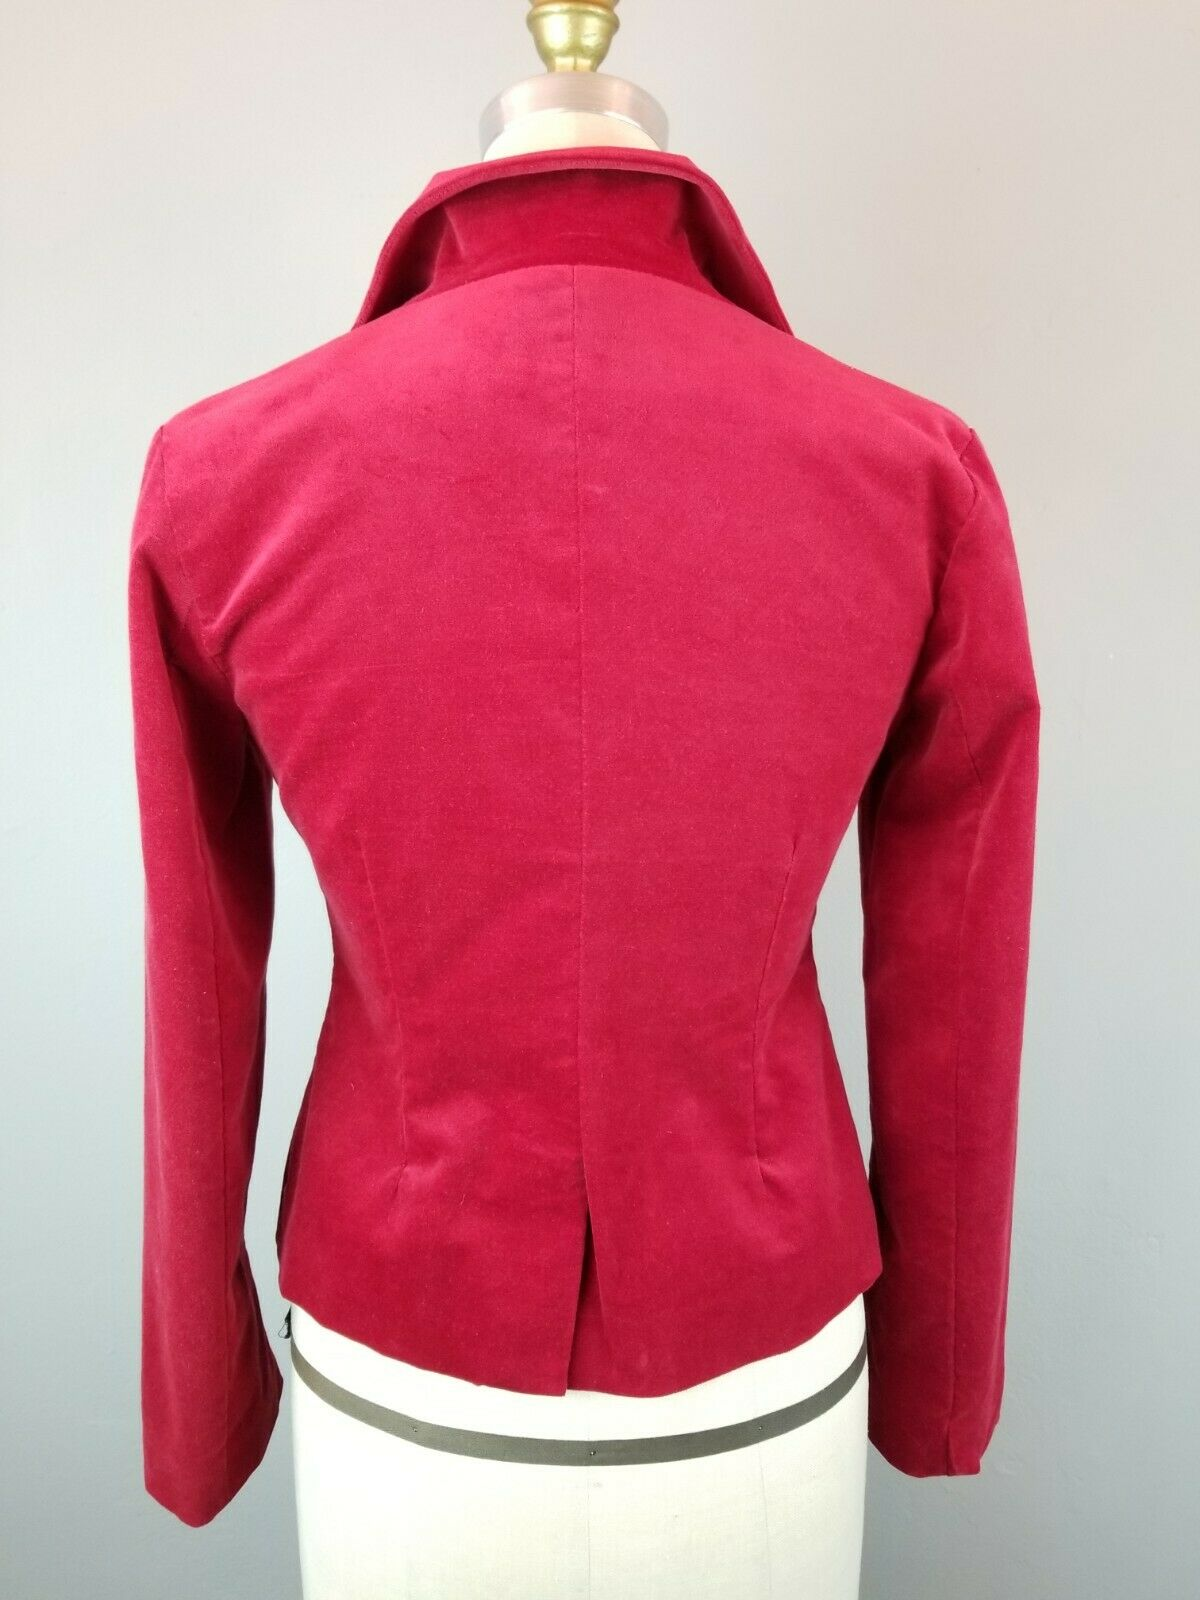 Red Velvet Fitted Blazer Womens Size Small  - image 5